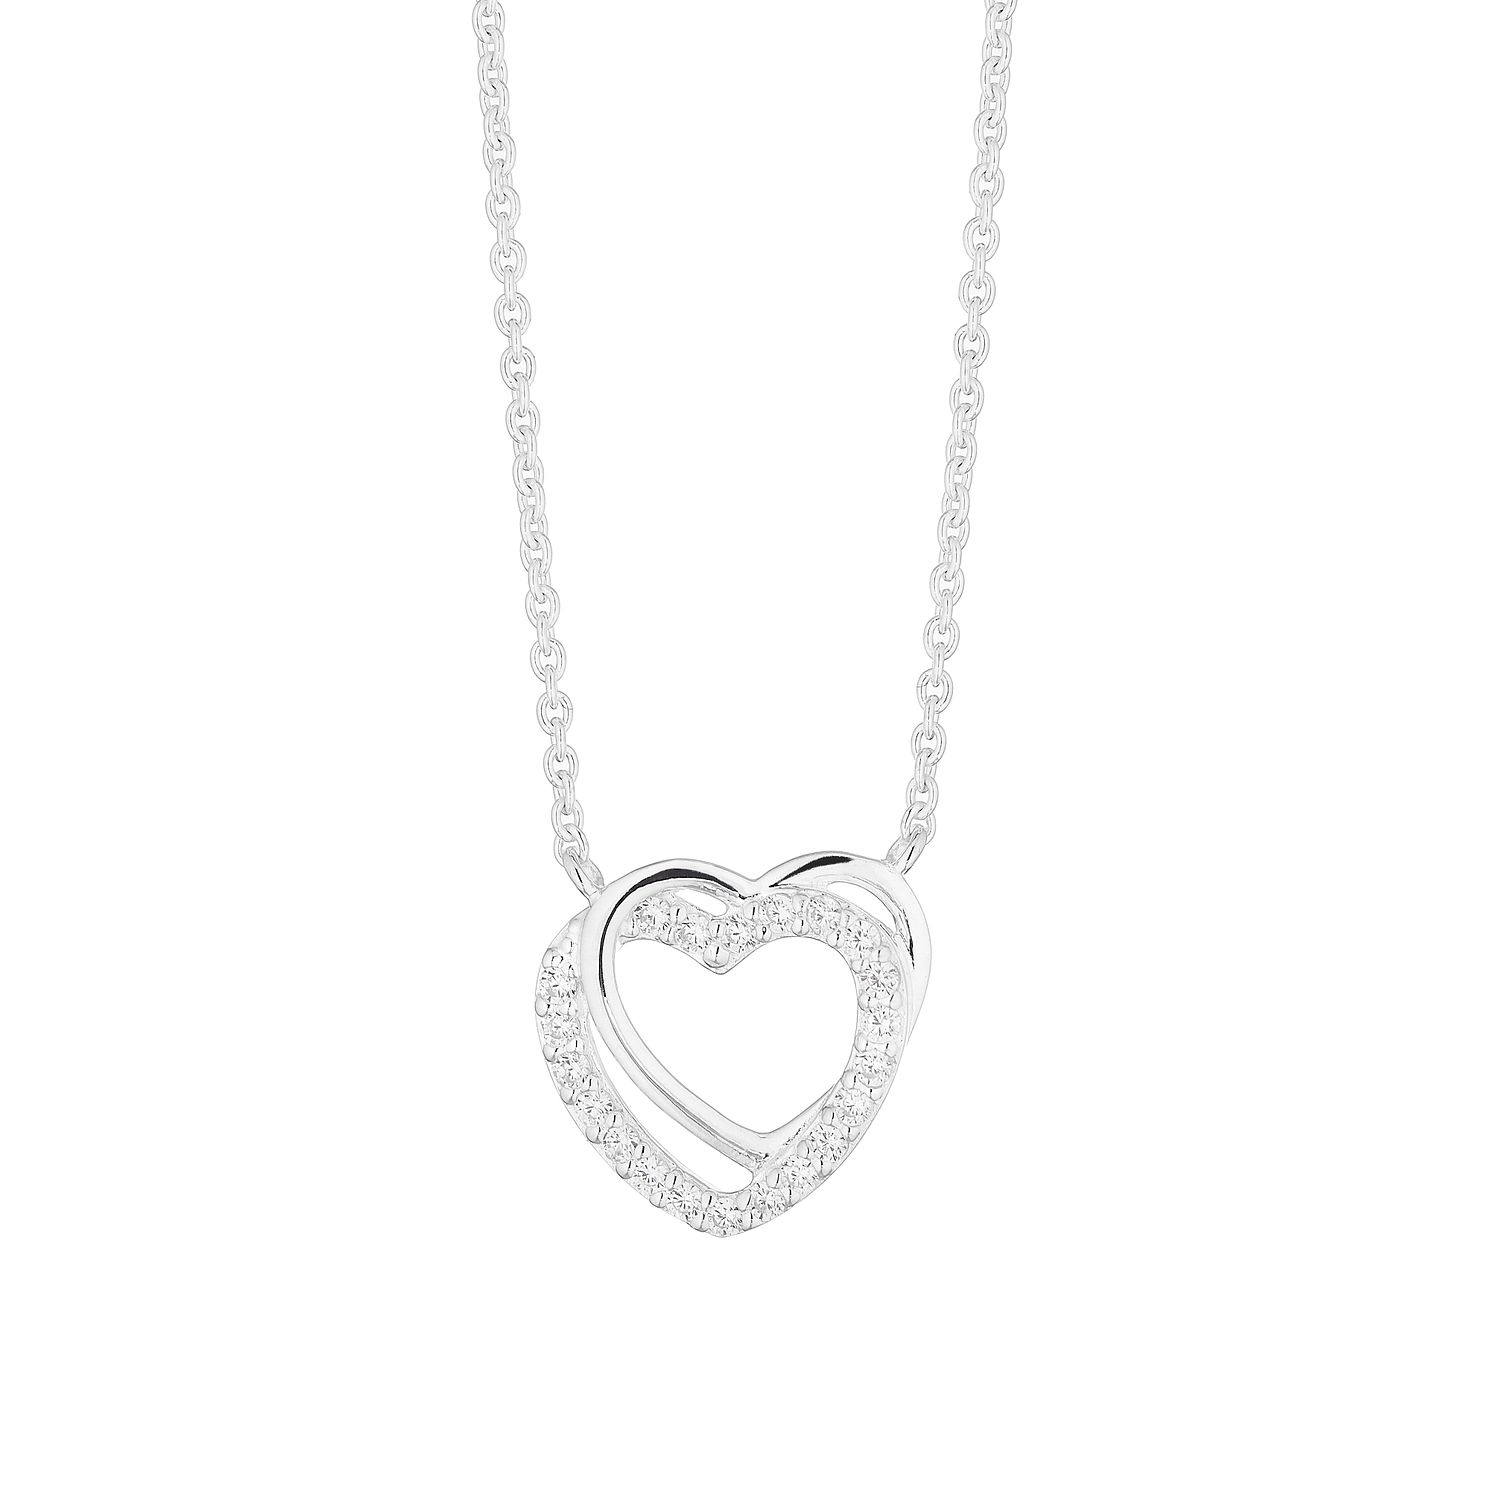 Silver Cubic Zirconia Interlocking Hearts Pendant - Product number 4842057